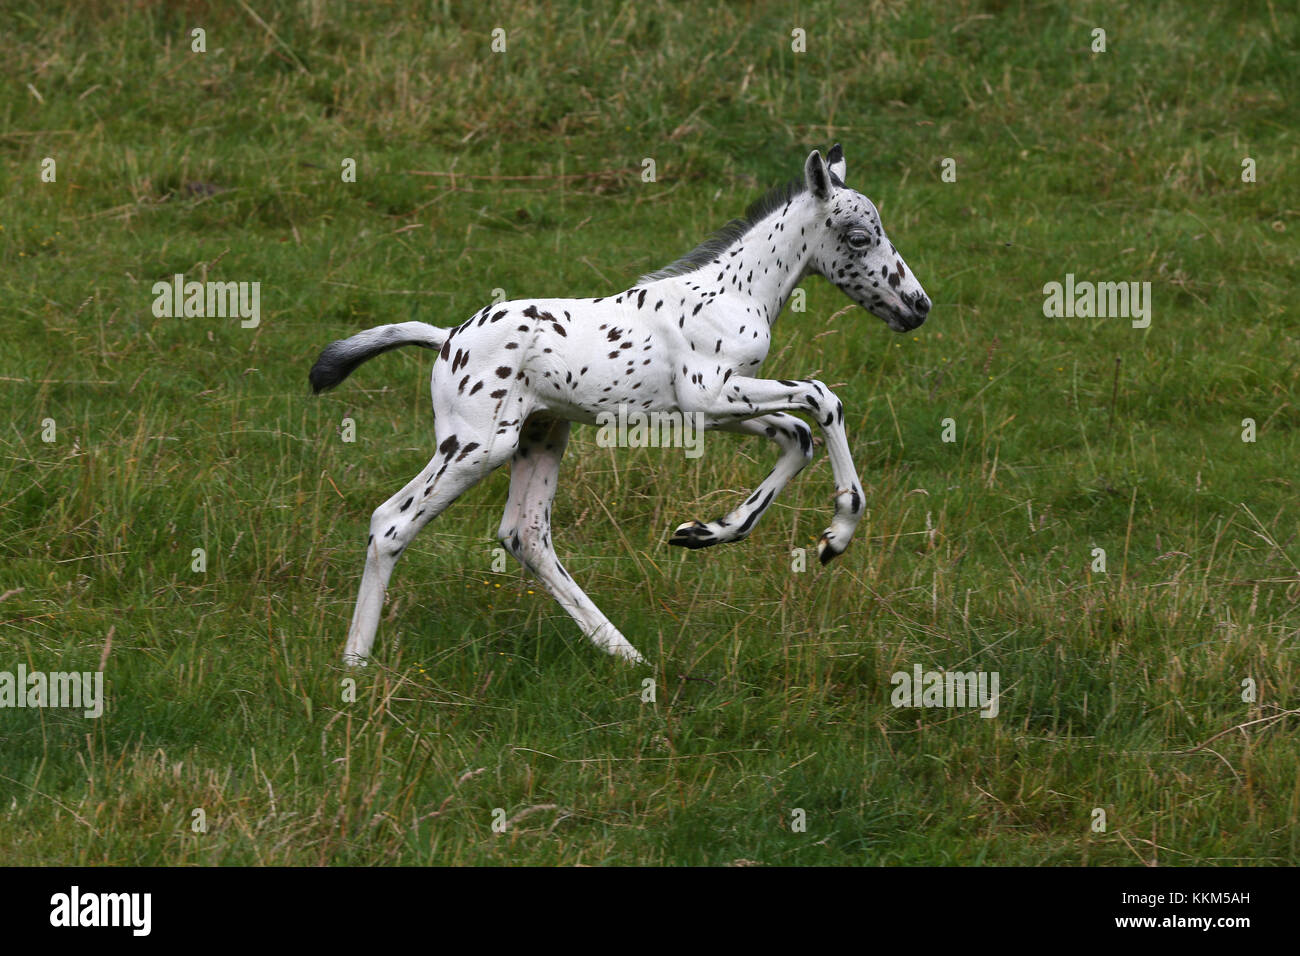 Spotted Foal Leaping - Stock Image